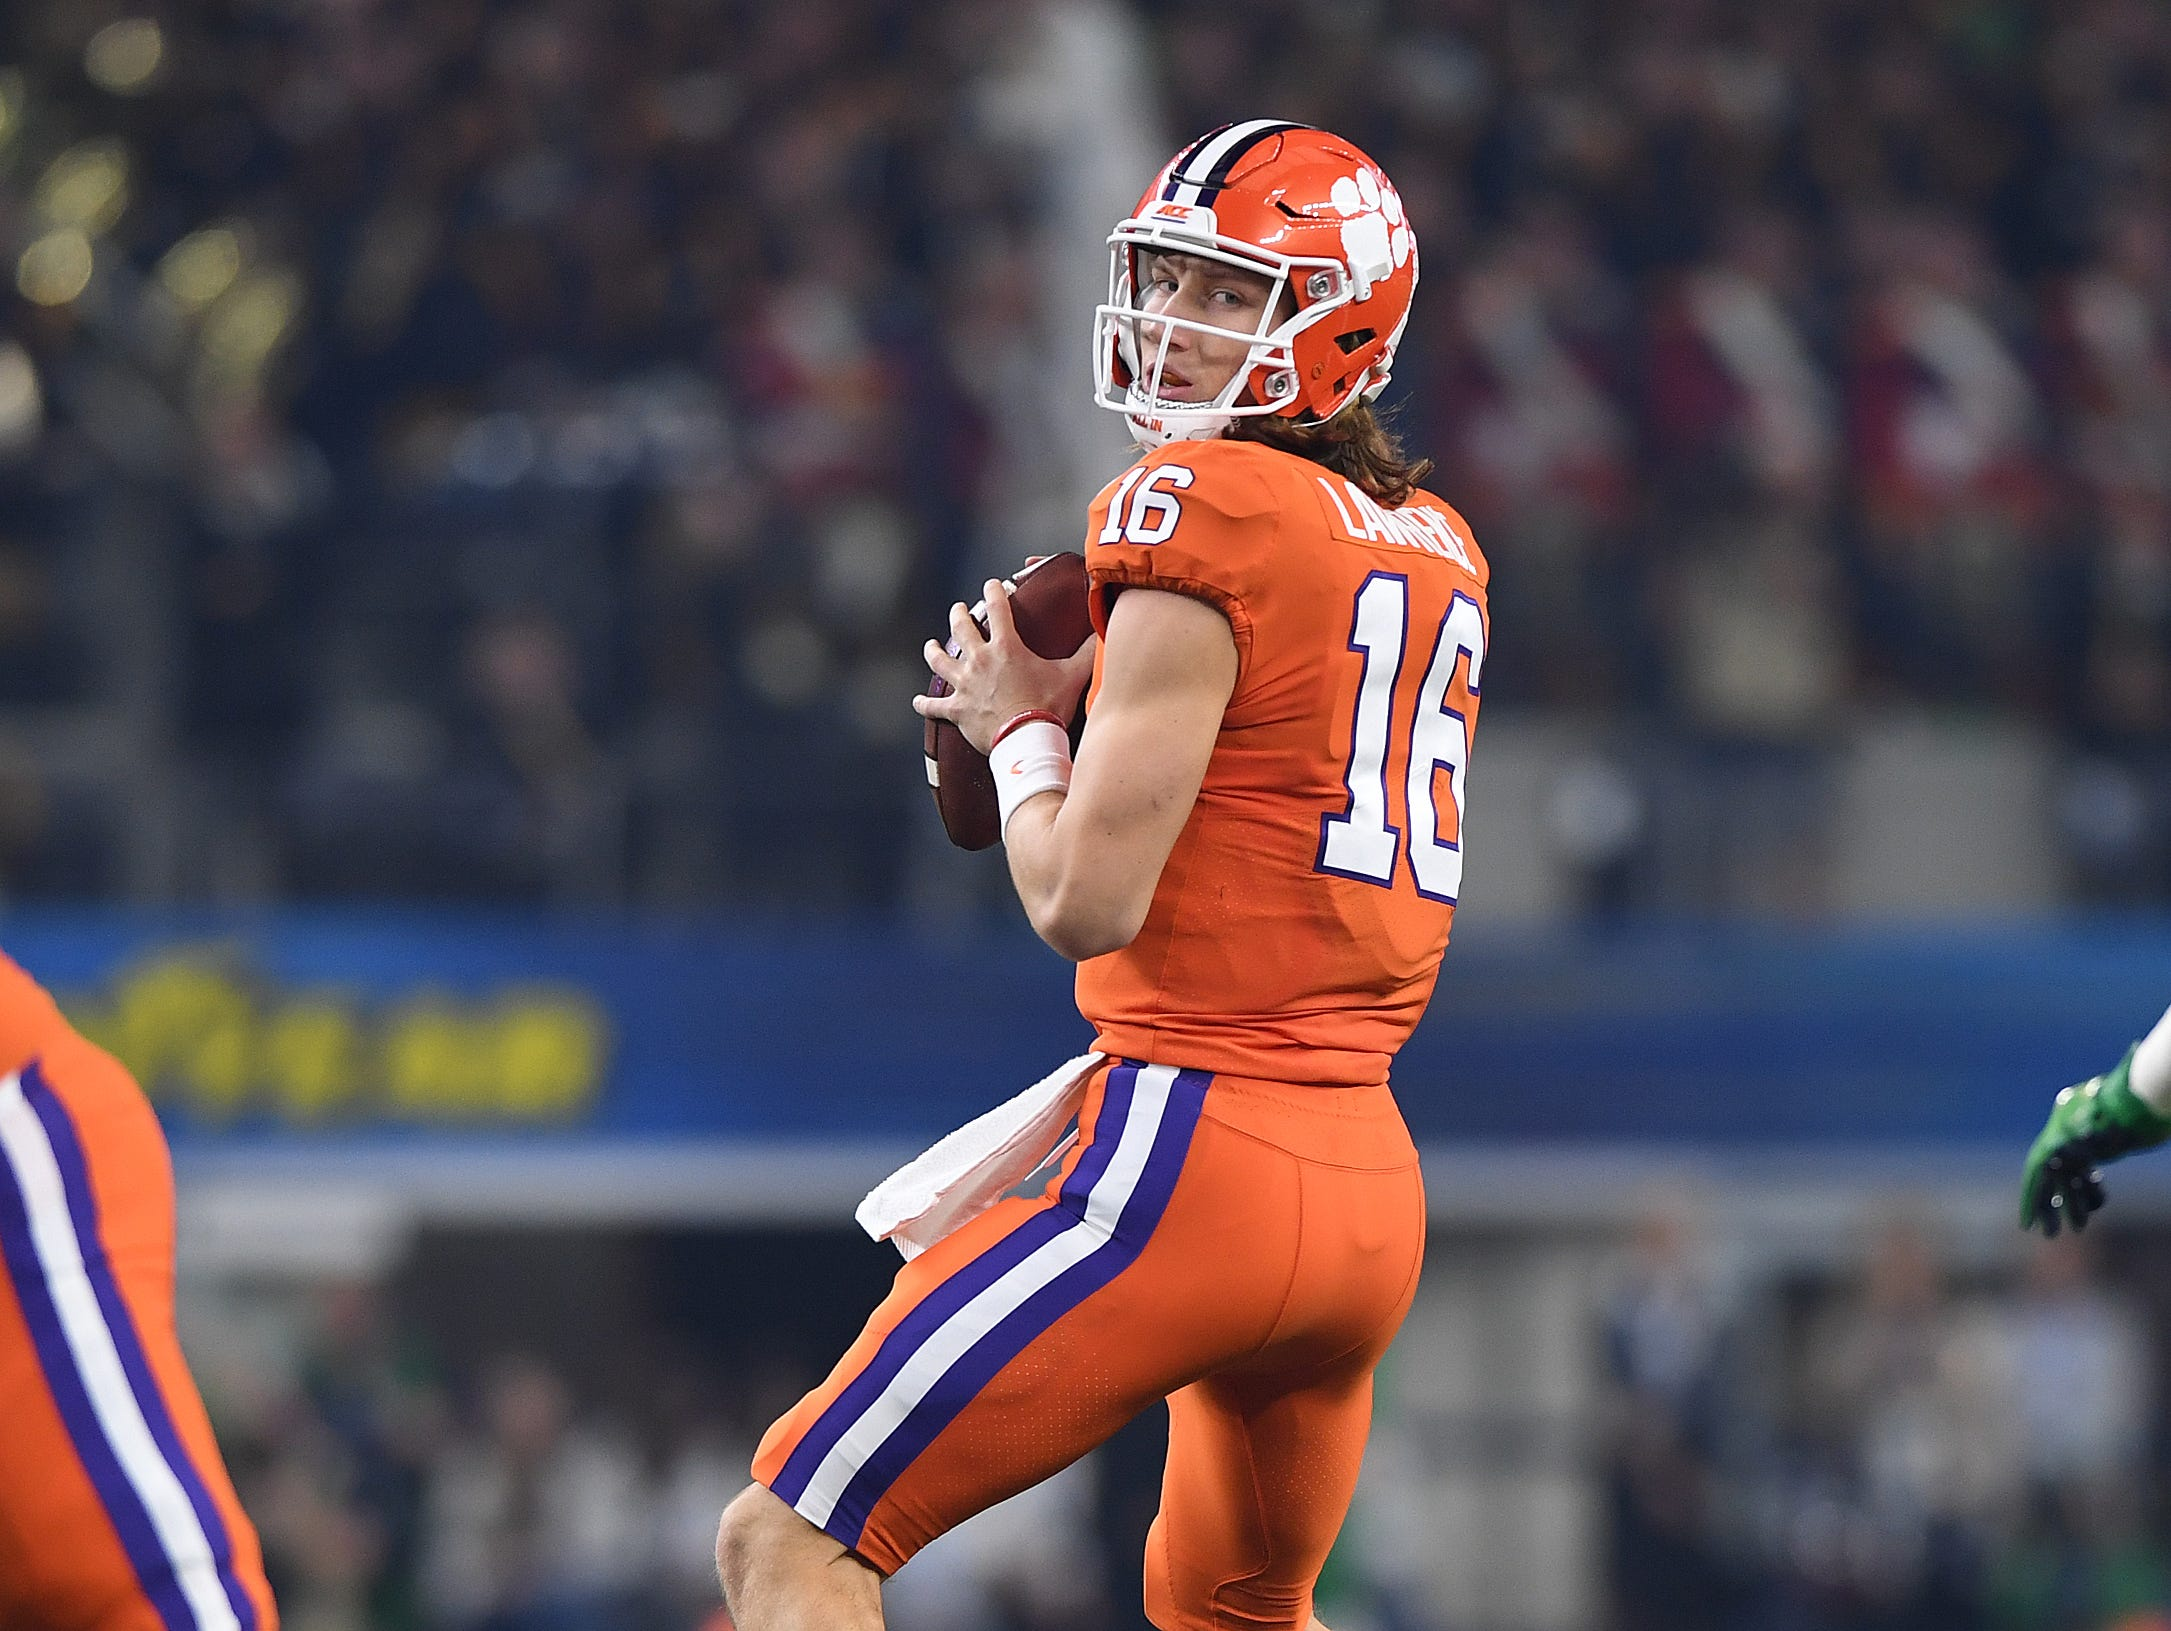 Clemson quarterback Trevor Lawrence (16) looks to pass against Notre Dame during the 1st quarter of the Goodyear Cotton Bowl at AT&T stadium in Arlington, TX Saturday, December 29, 2018.